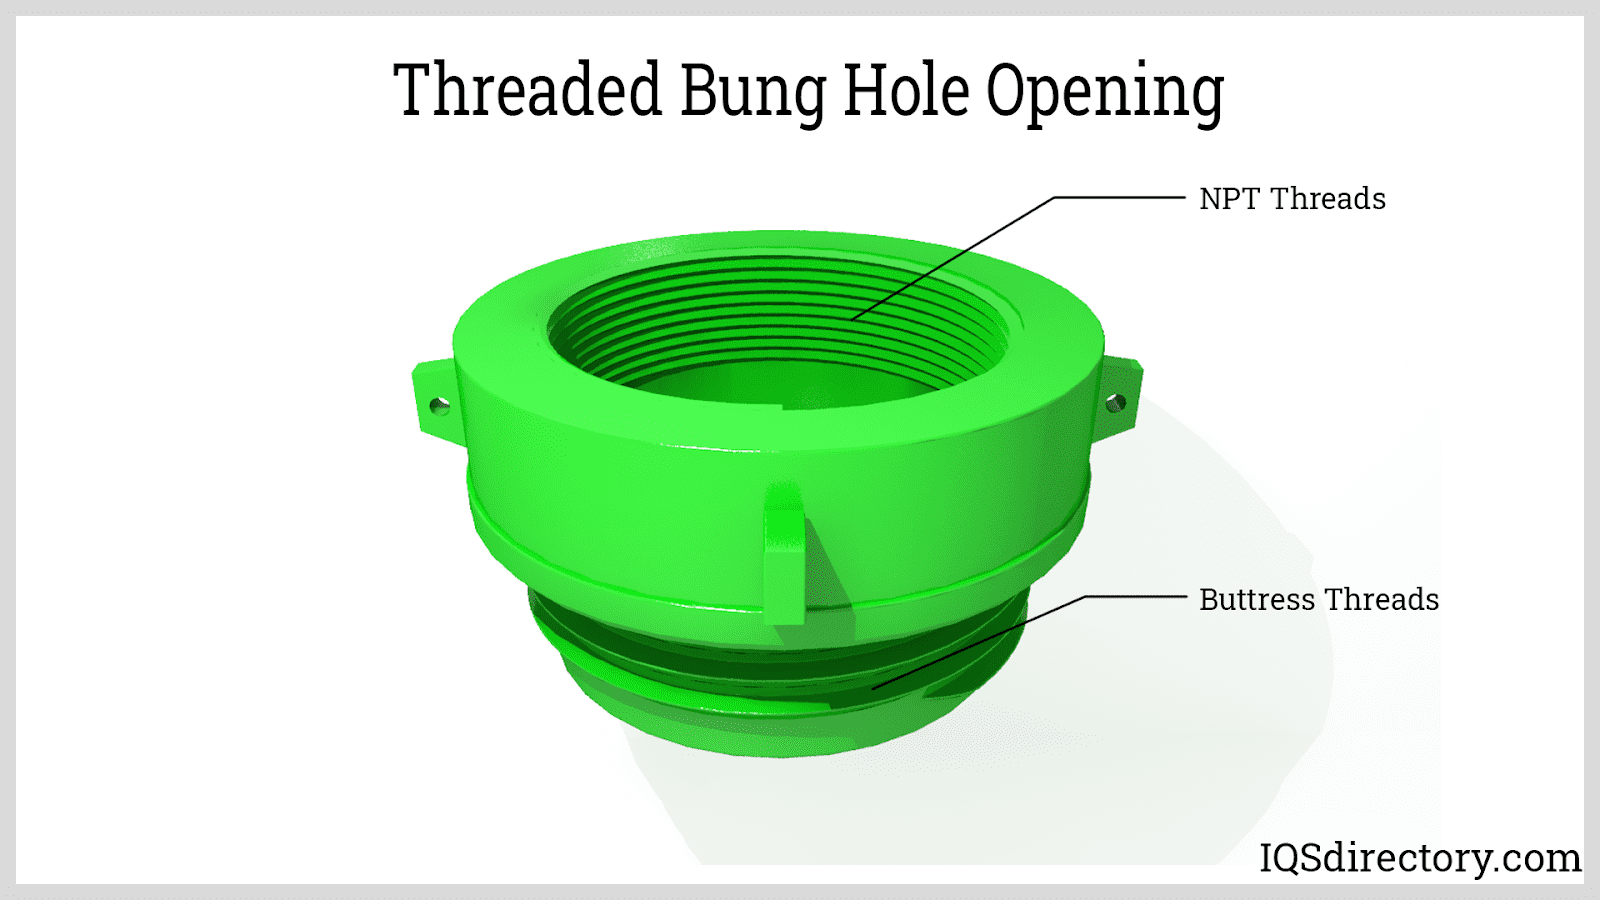 Threaded Bung Hole Opening